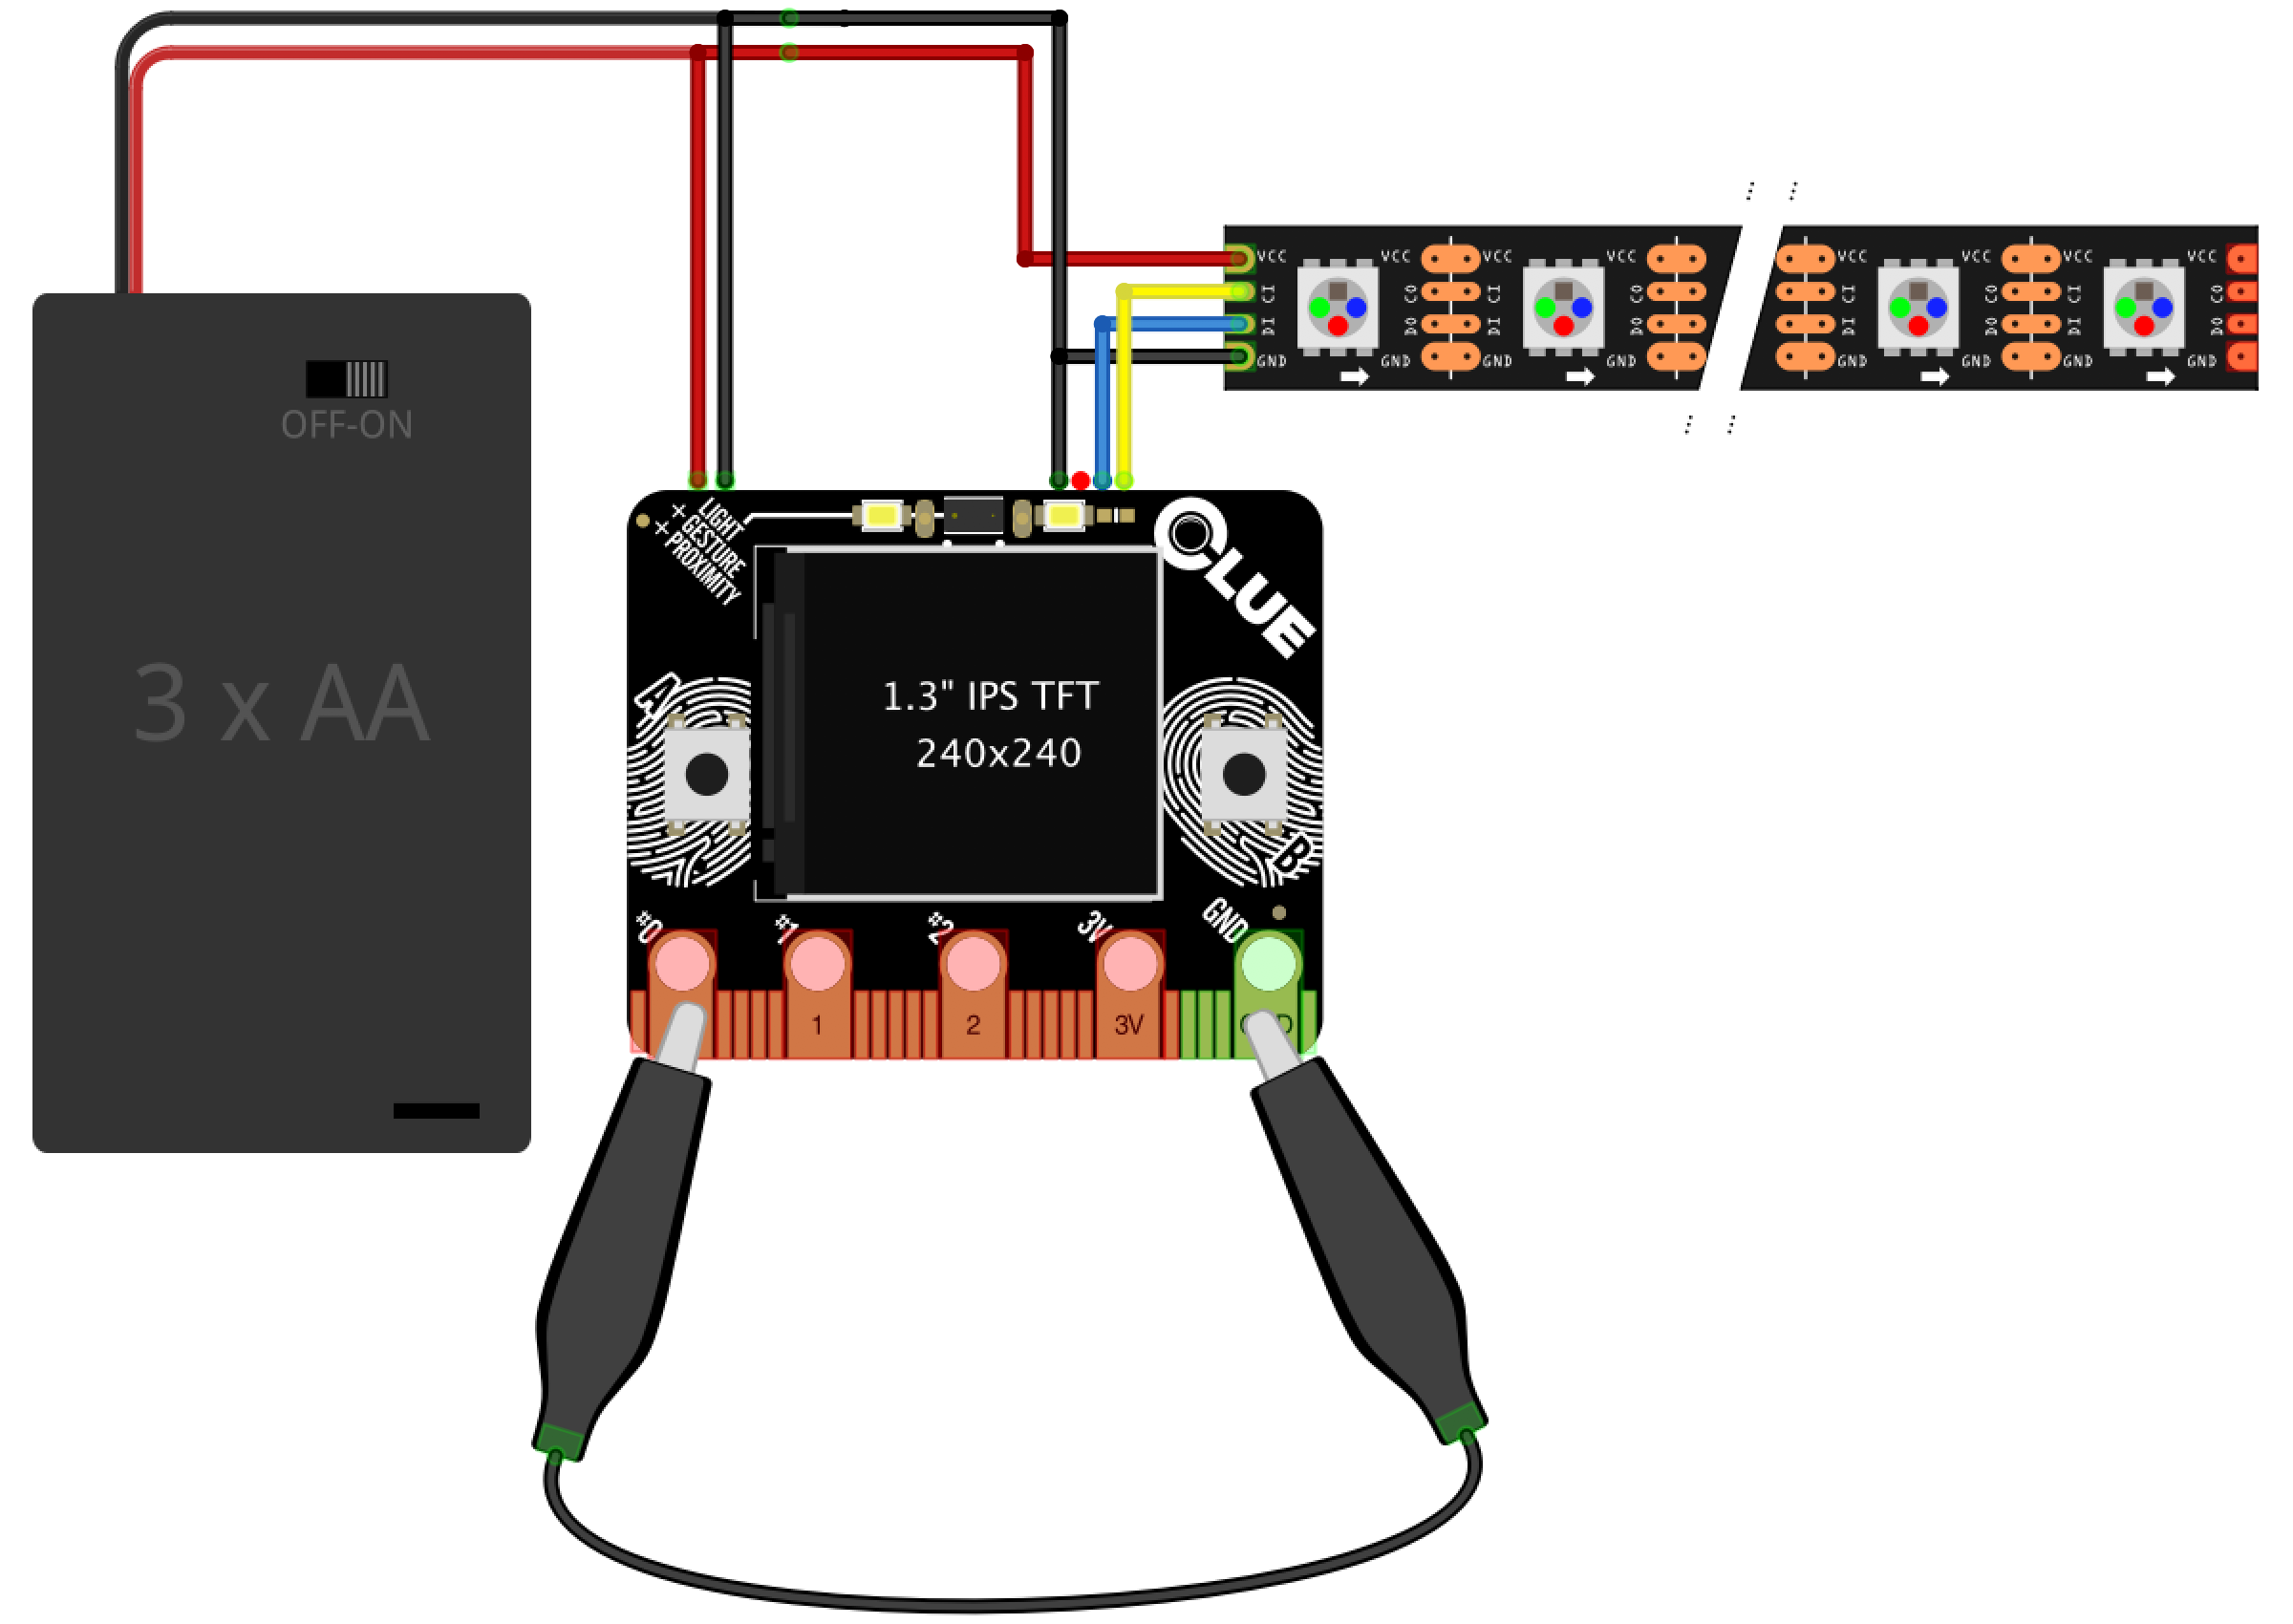 led_strips_clue-painter-fritzing.png